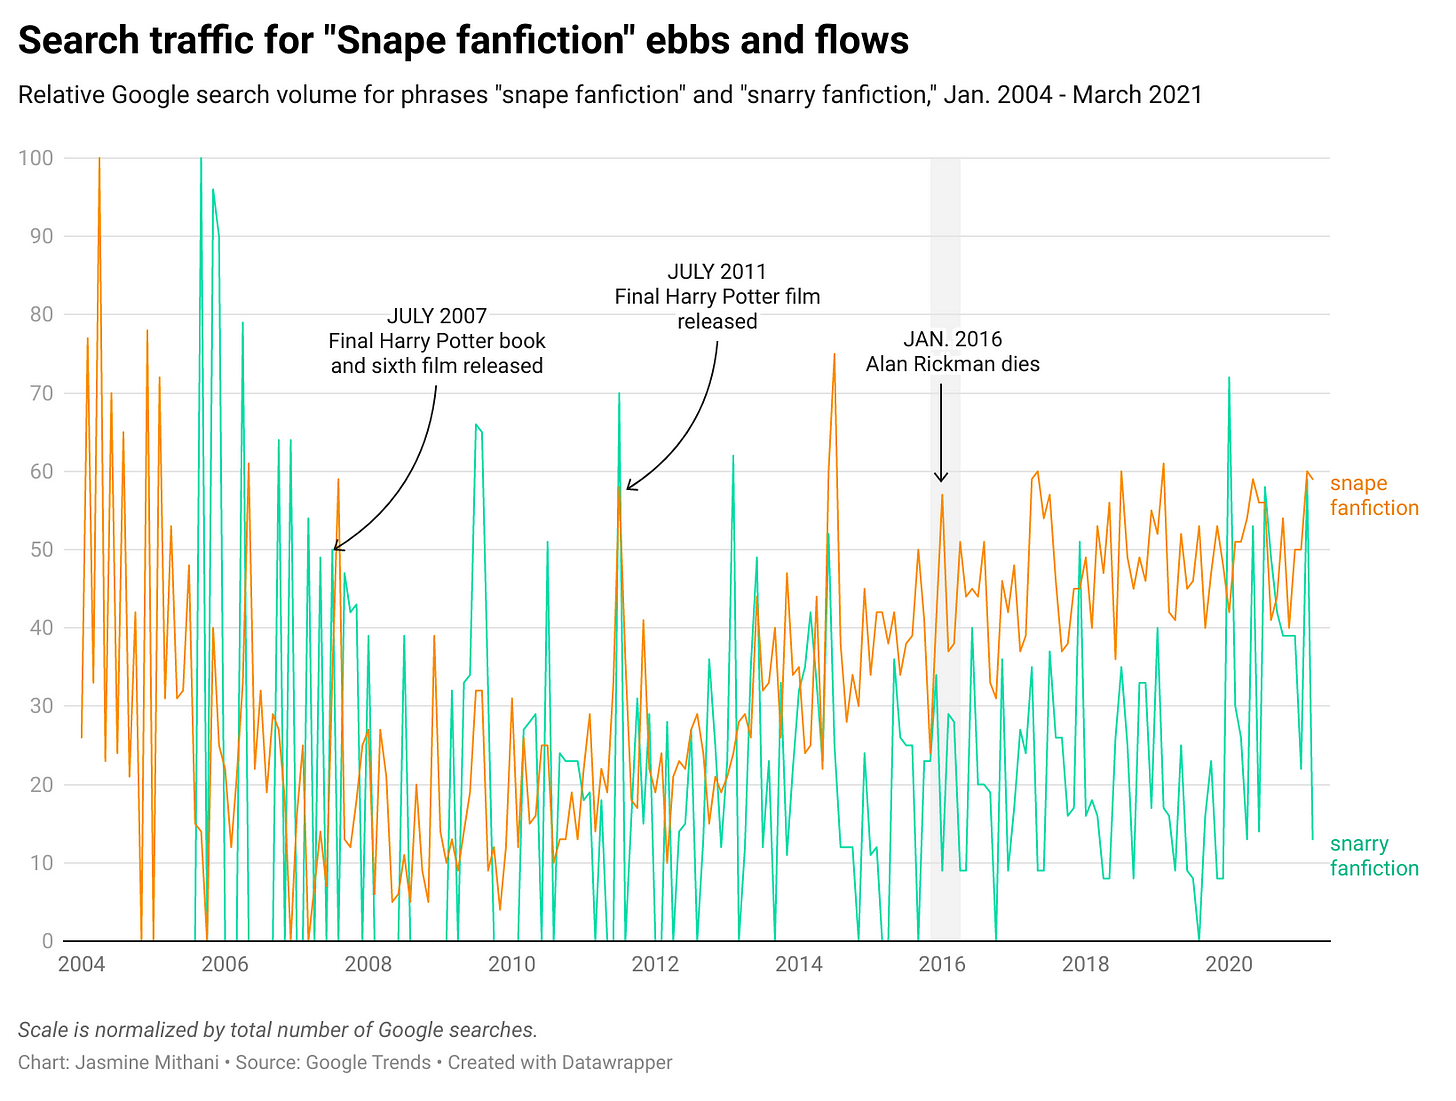 """Search traffic for """"Snape fanfiction"""" ebbs and flows: Relative Google search volume for phrases """"snape fanfiction"""" and """"snarry fanfiction,"""" Jan. 2004 - March 2021"""